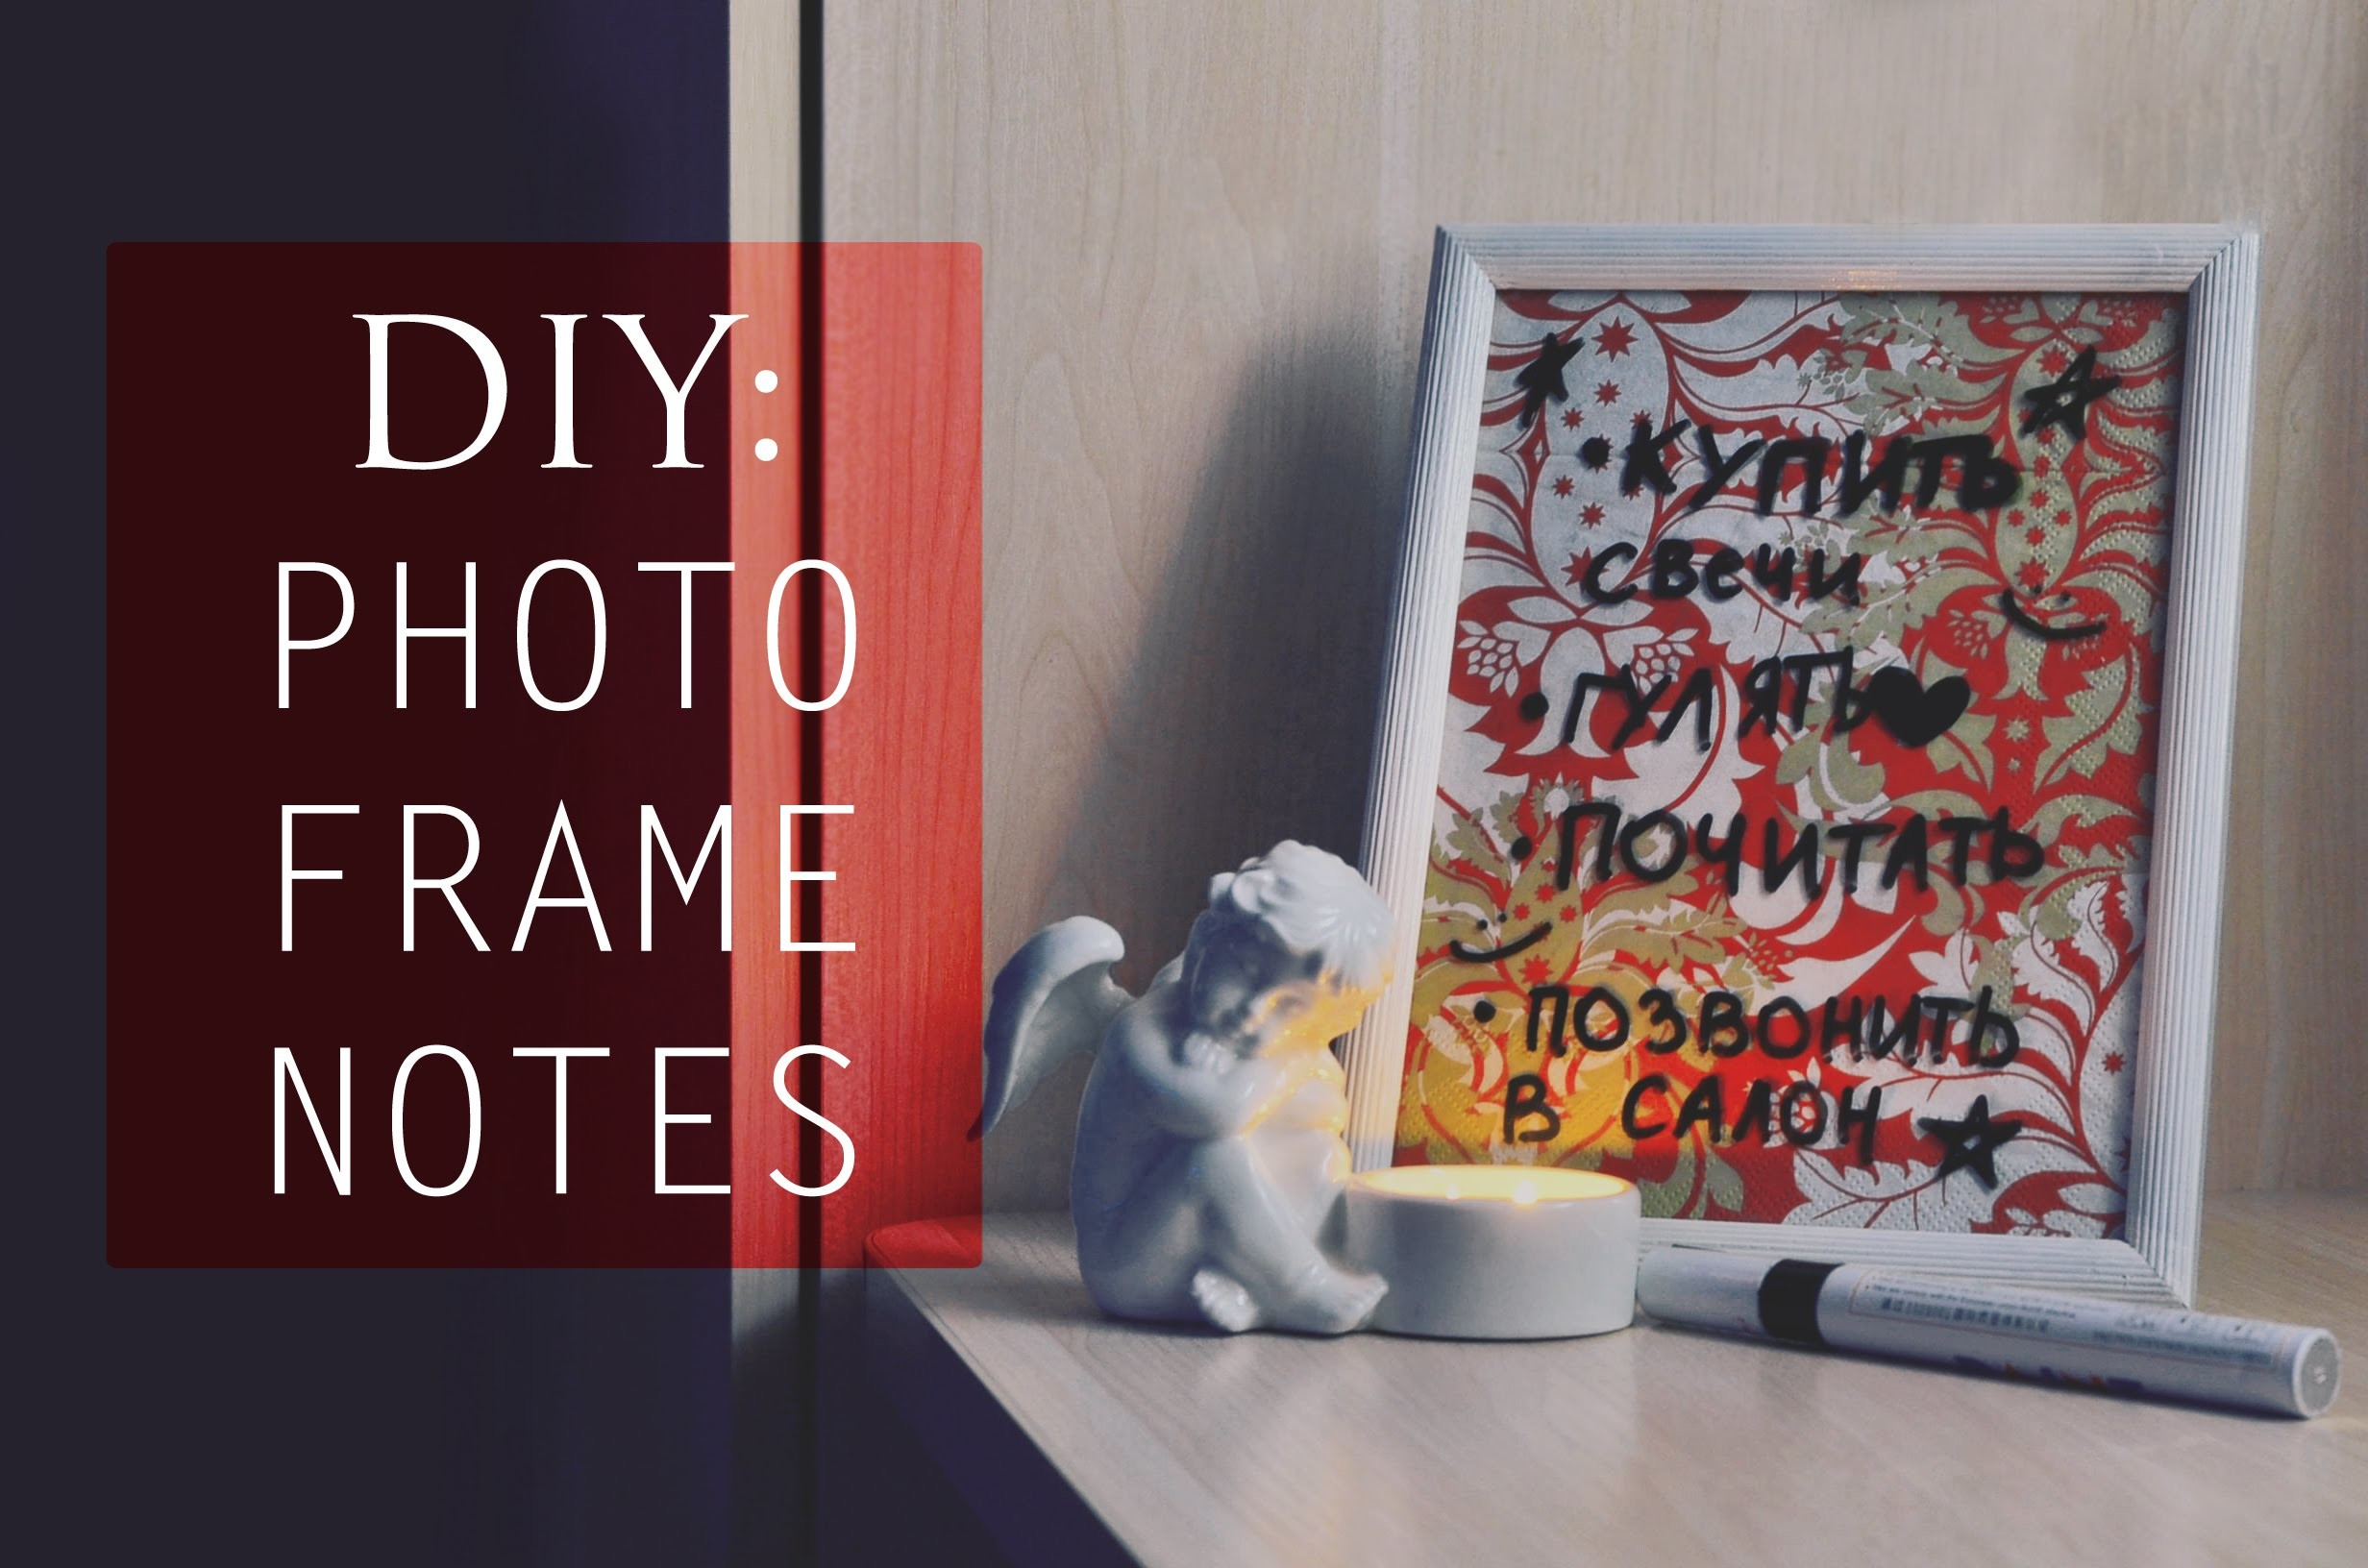 DIY: PHOTO FRAME NOTES. ОРГАНАЙЗЕР ИЗ ФОТОРАМКИ. DIPSY